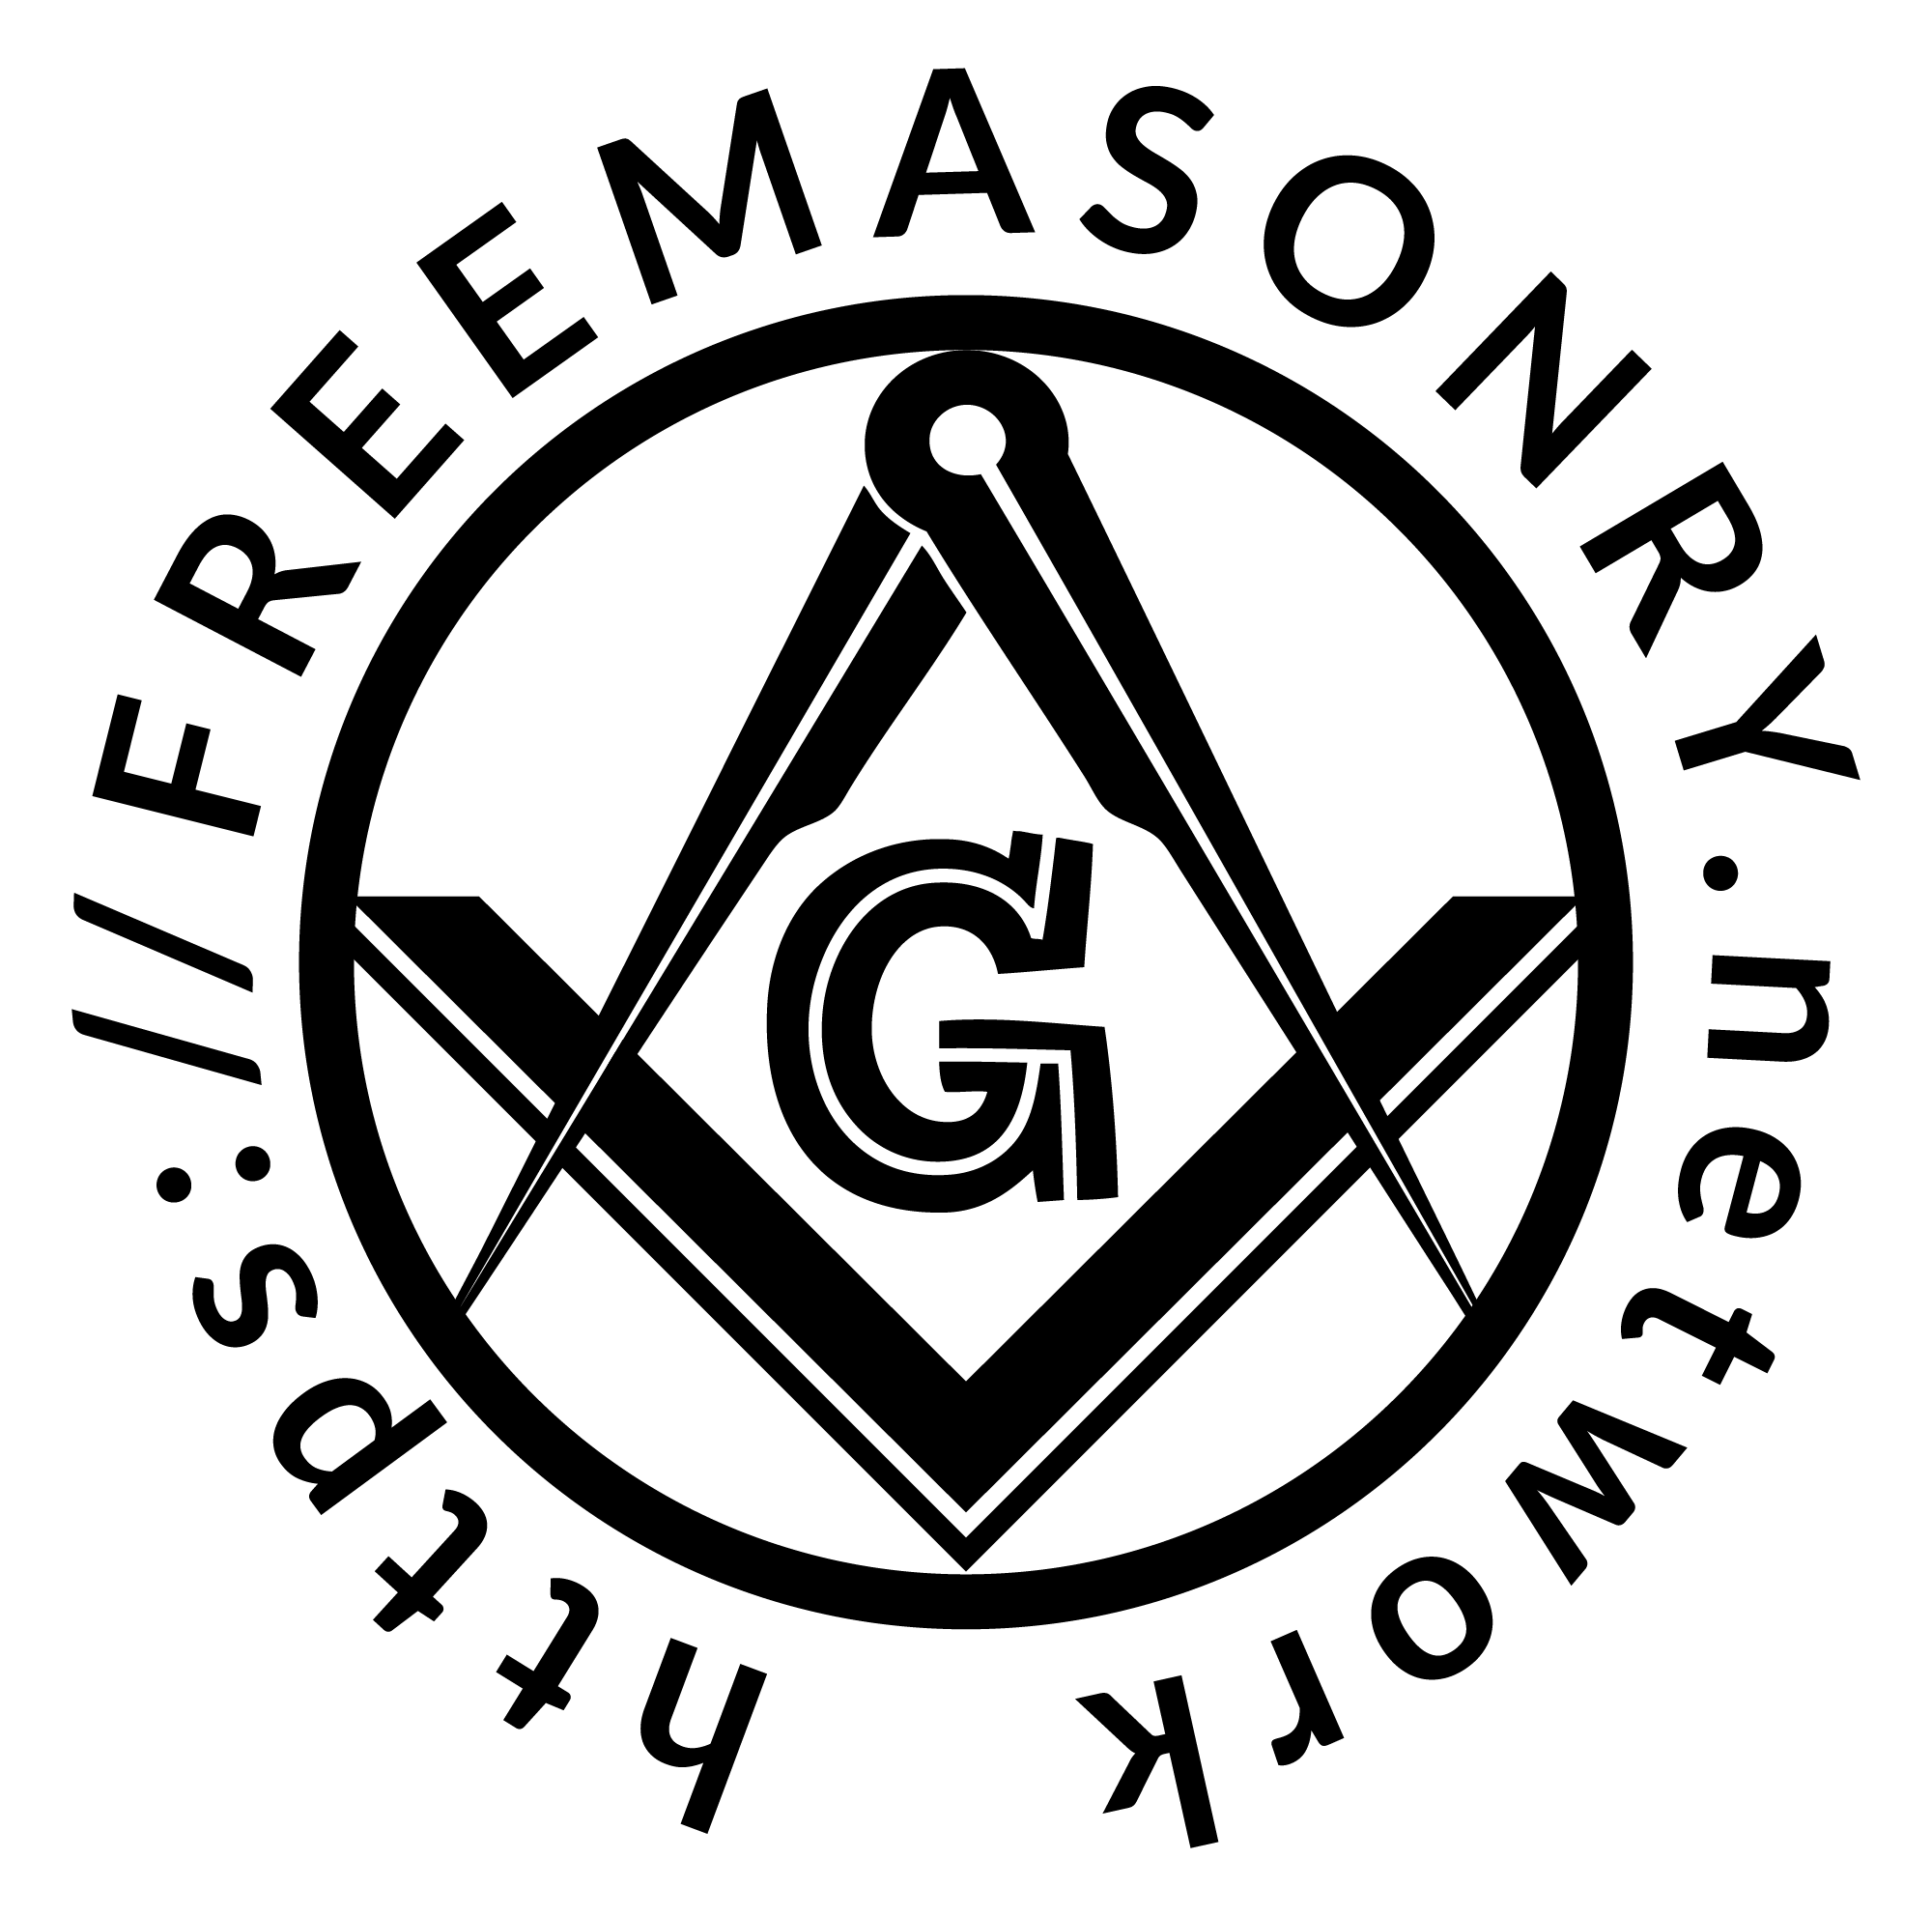 EVERYDAY LIFE OF A FREEMASON